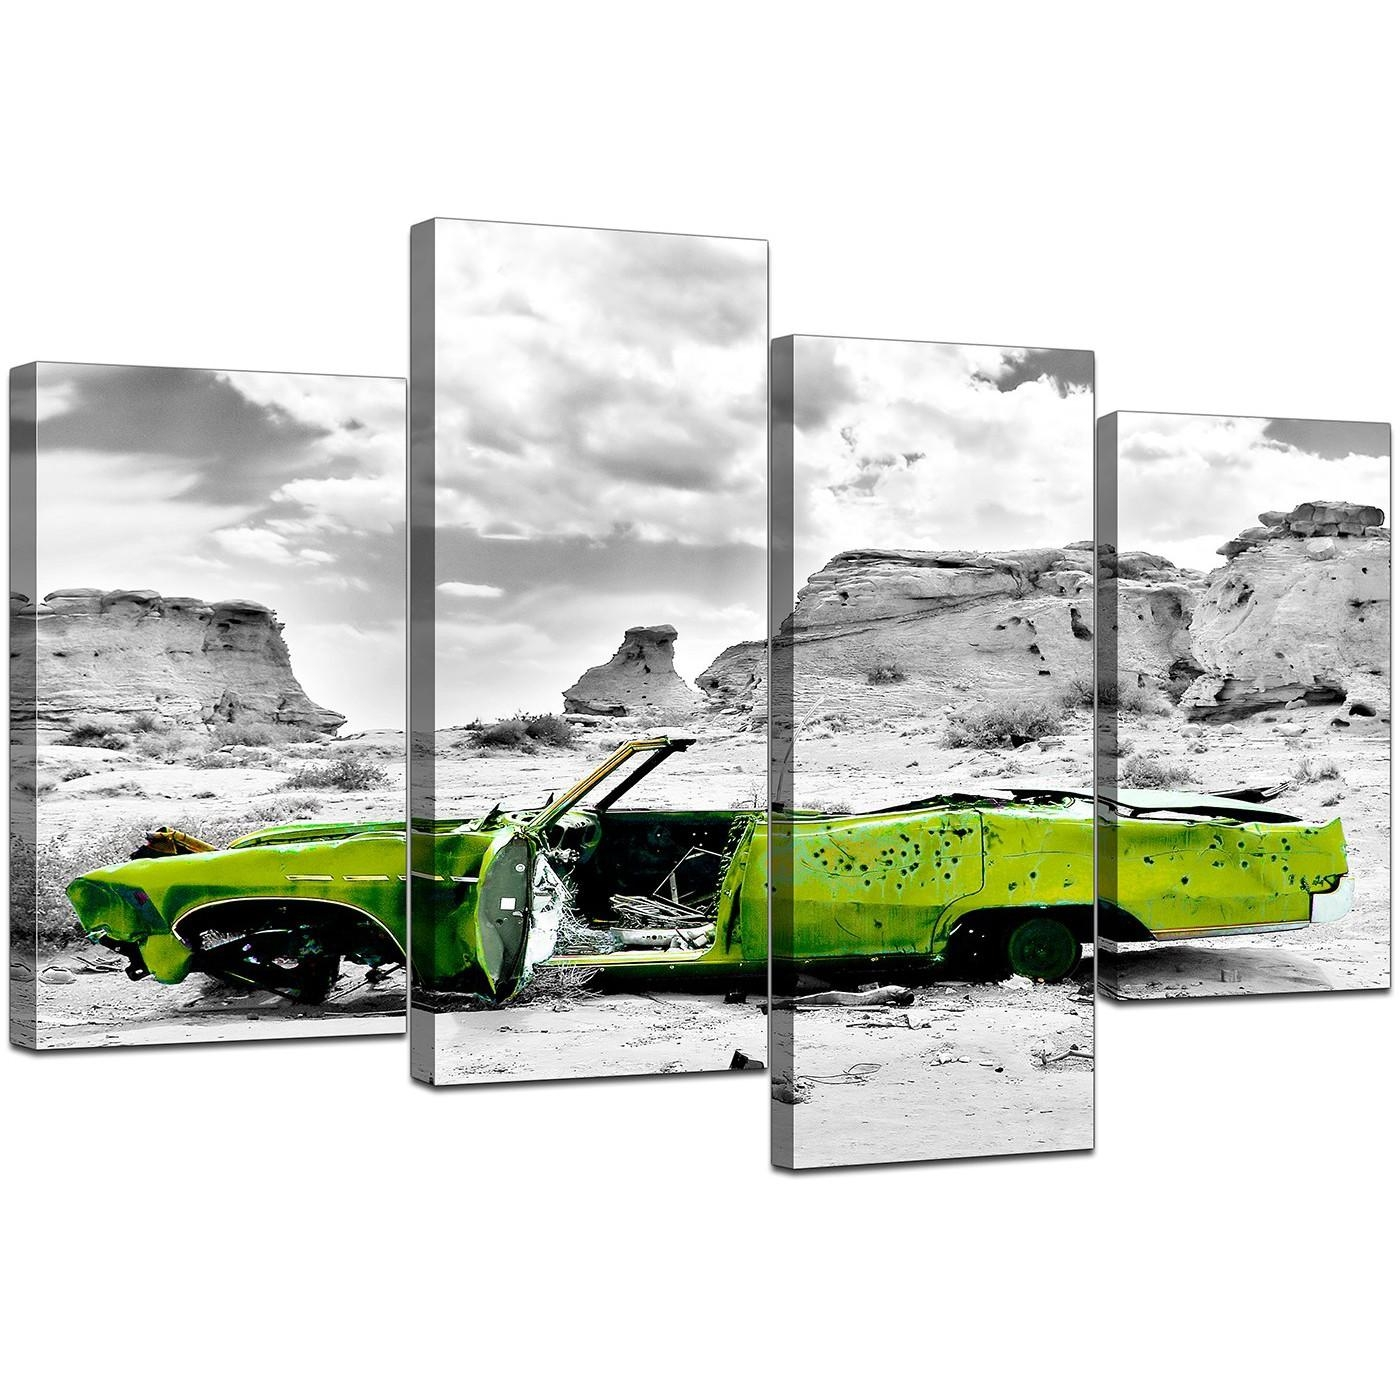 Canvas Art Of Green Car In Black & White For Your Office Throughout Cheap Black And White Wall Art (Image 5 of 20)